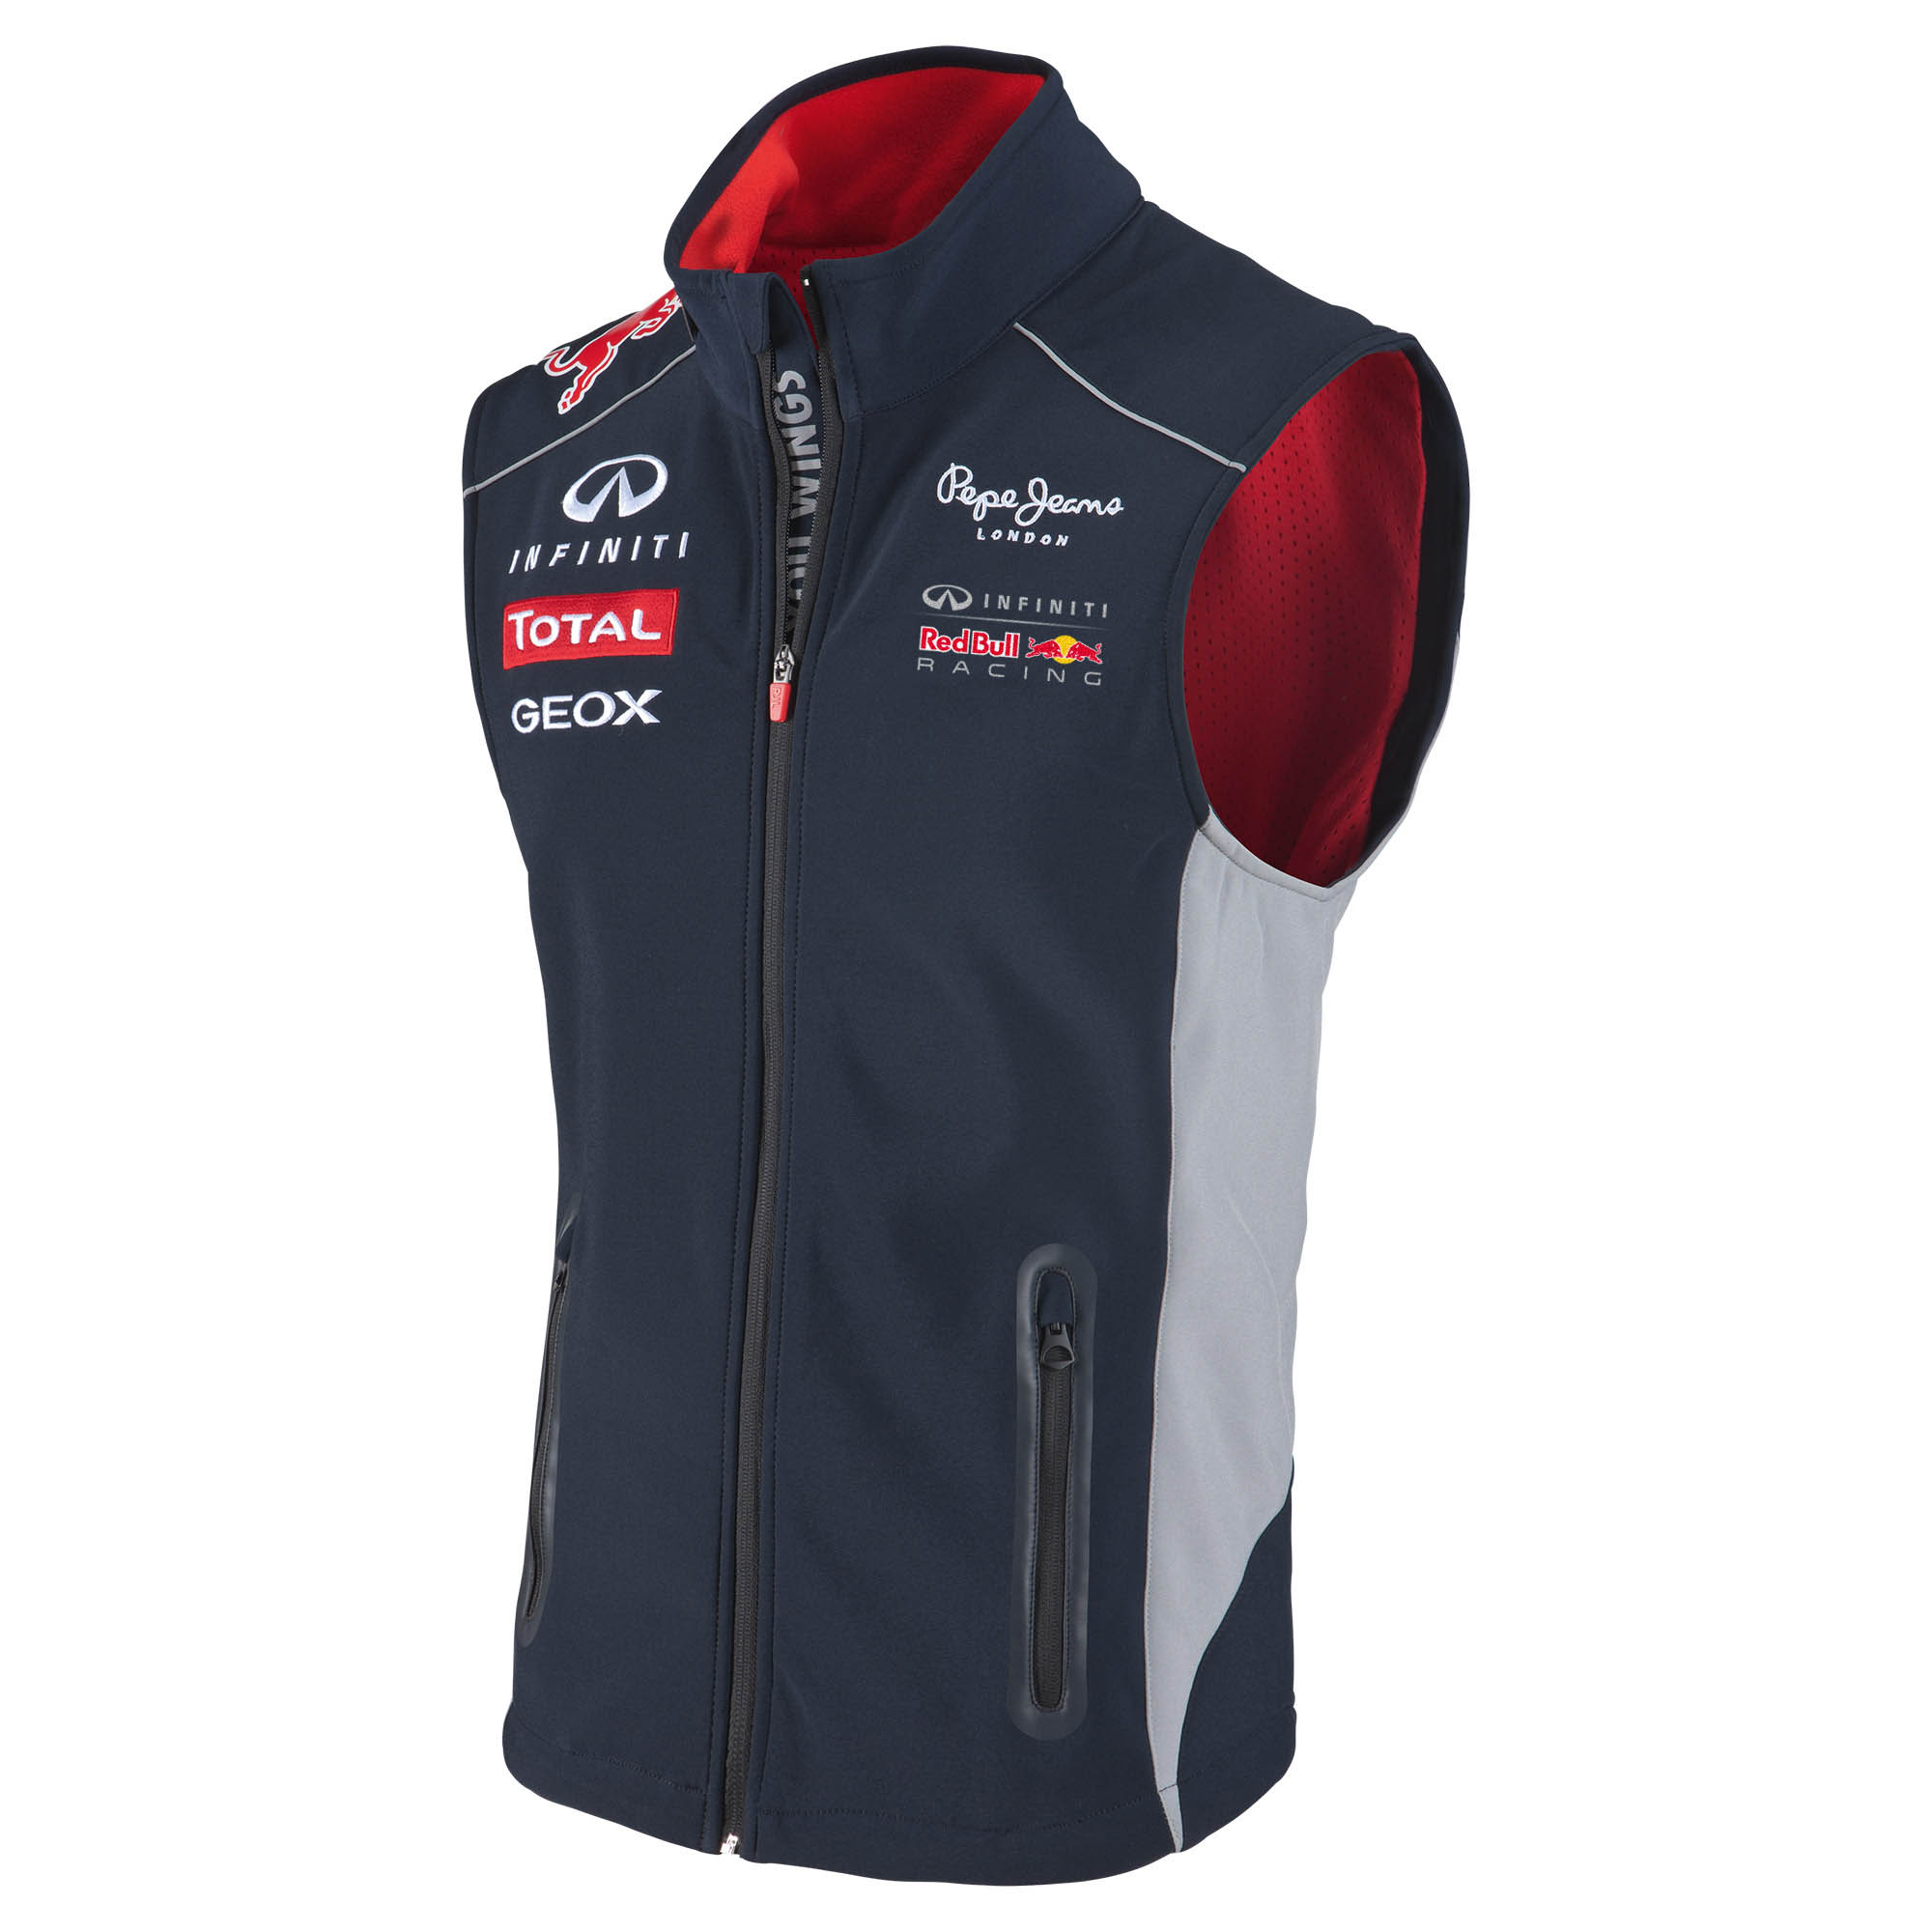 Infiniti Red Bull Racing 2013 Official Teamline Gilet